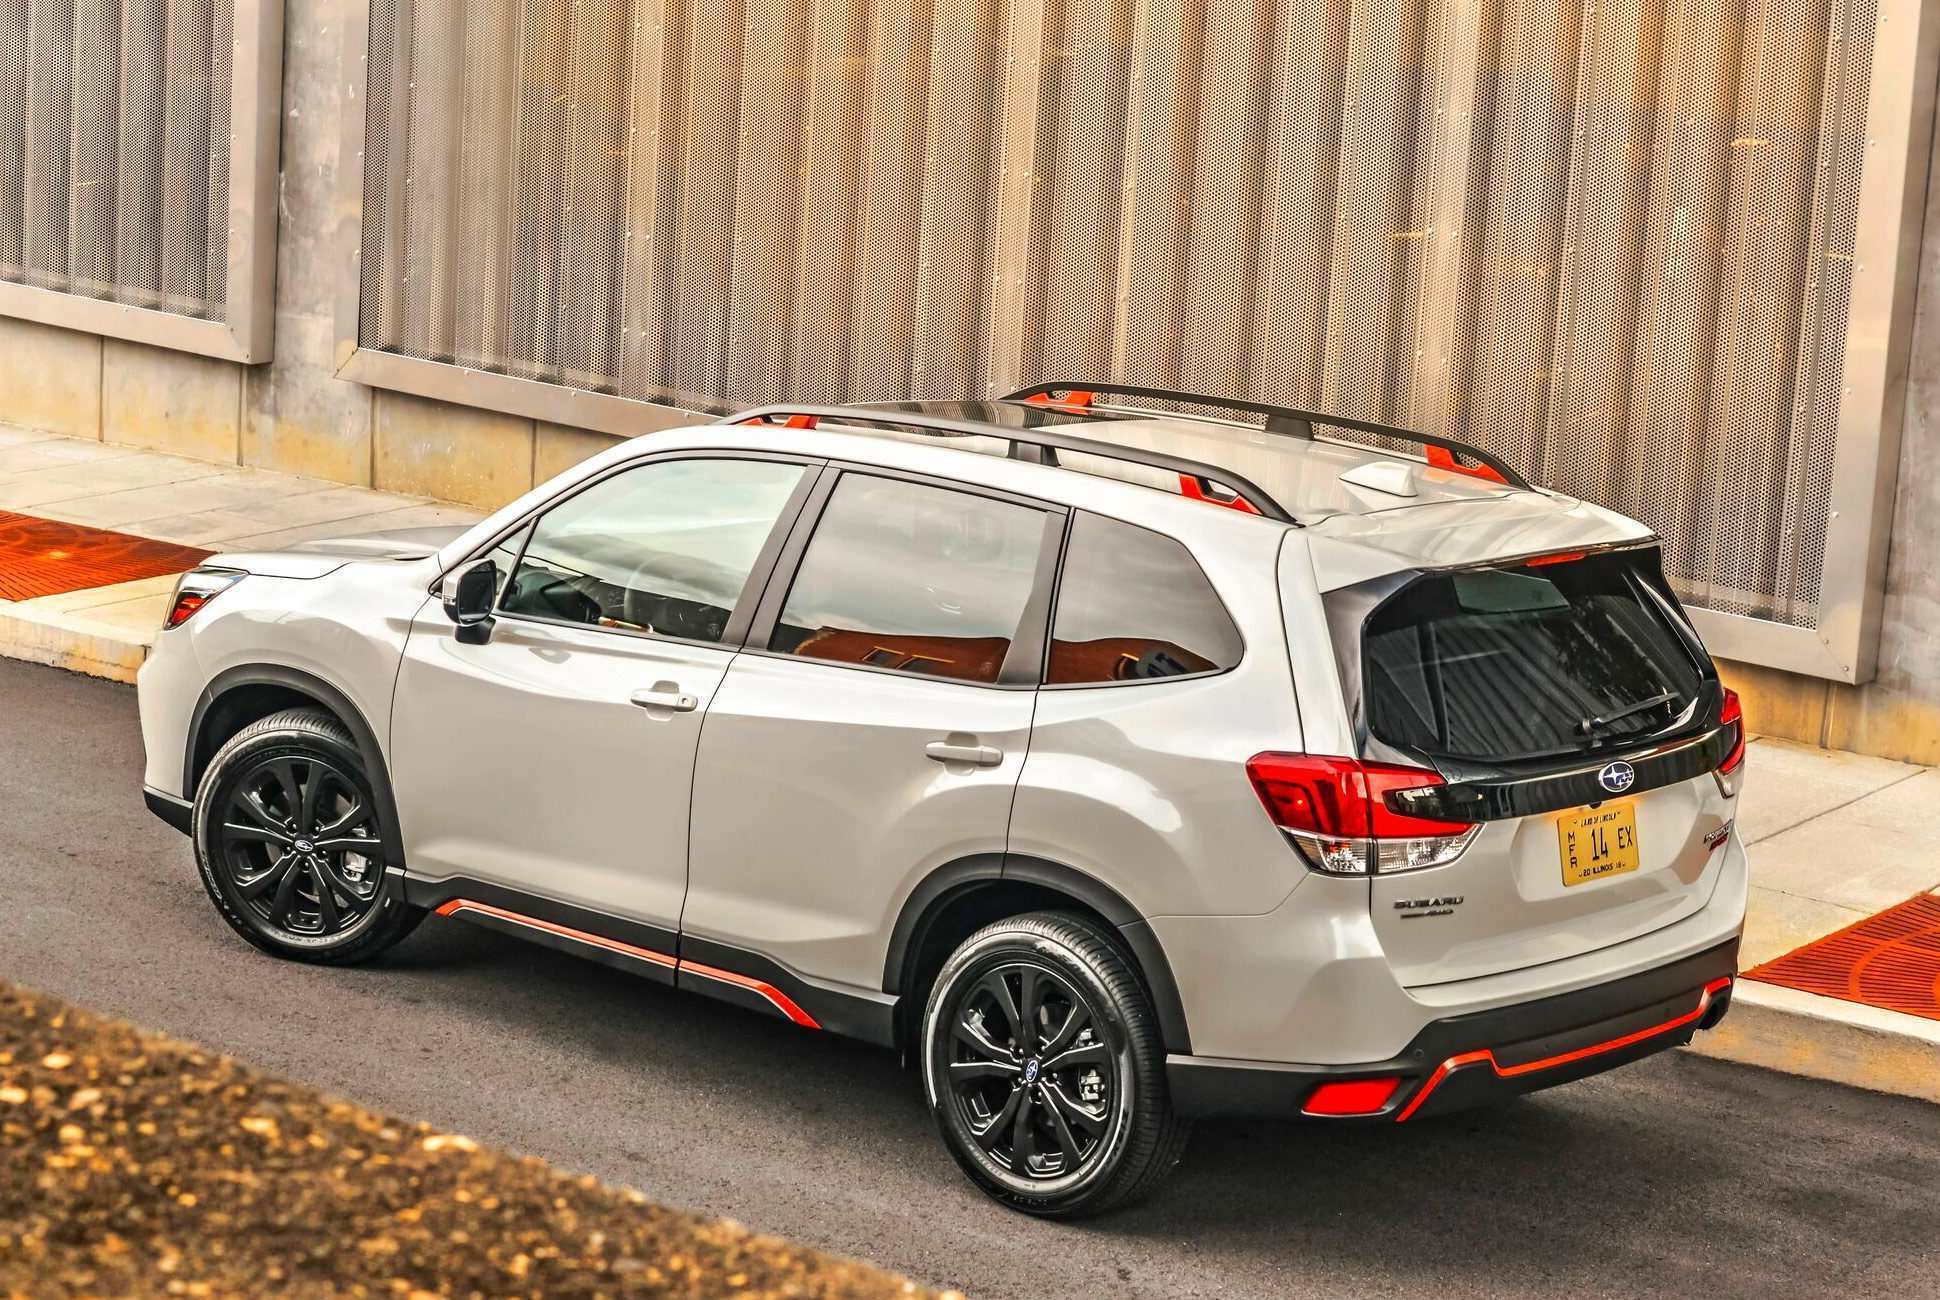 33 The Subaru Forester 2019 Gas Mileage Price And Release Date